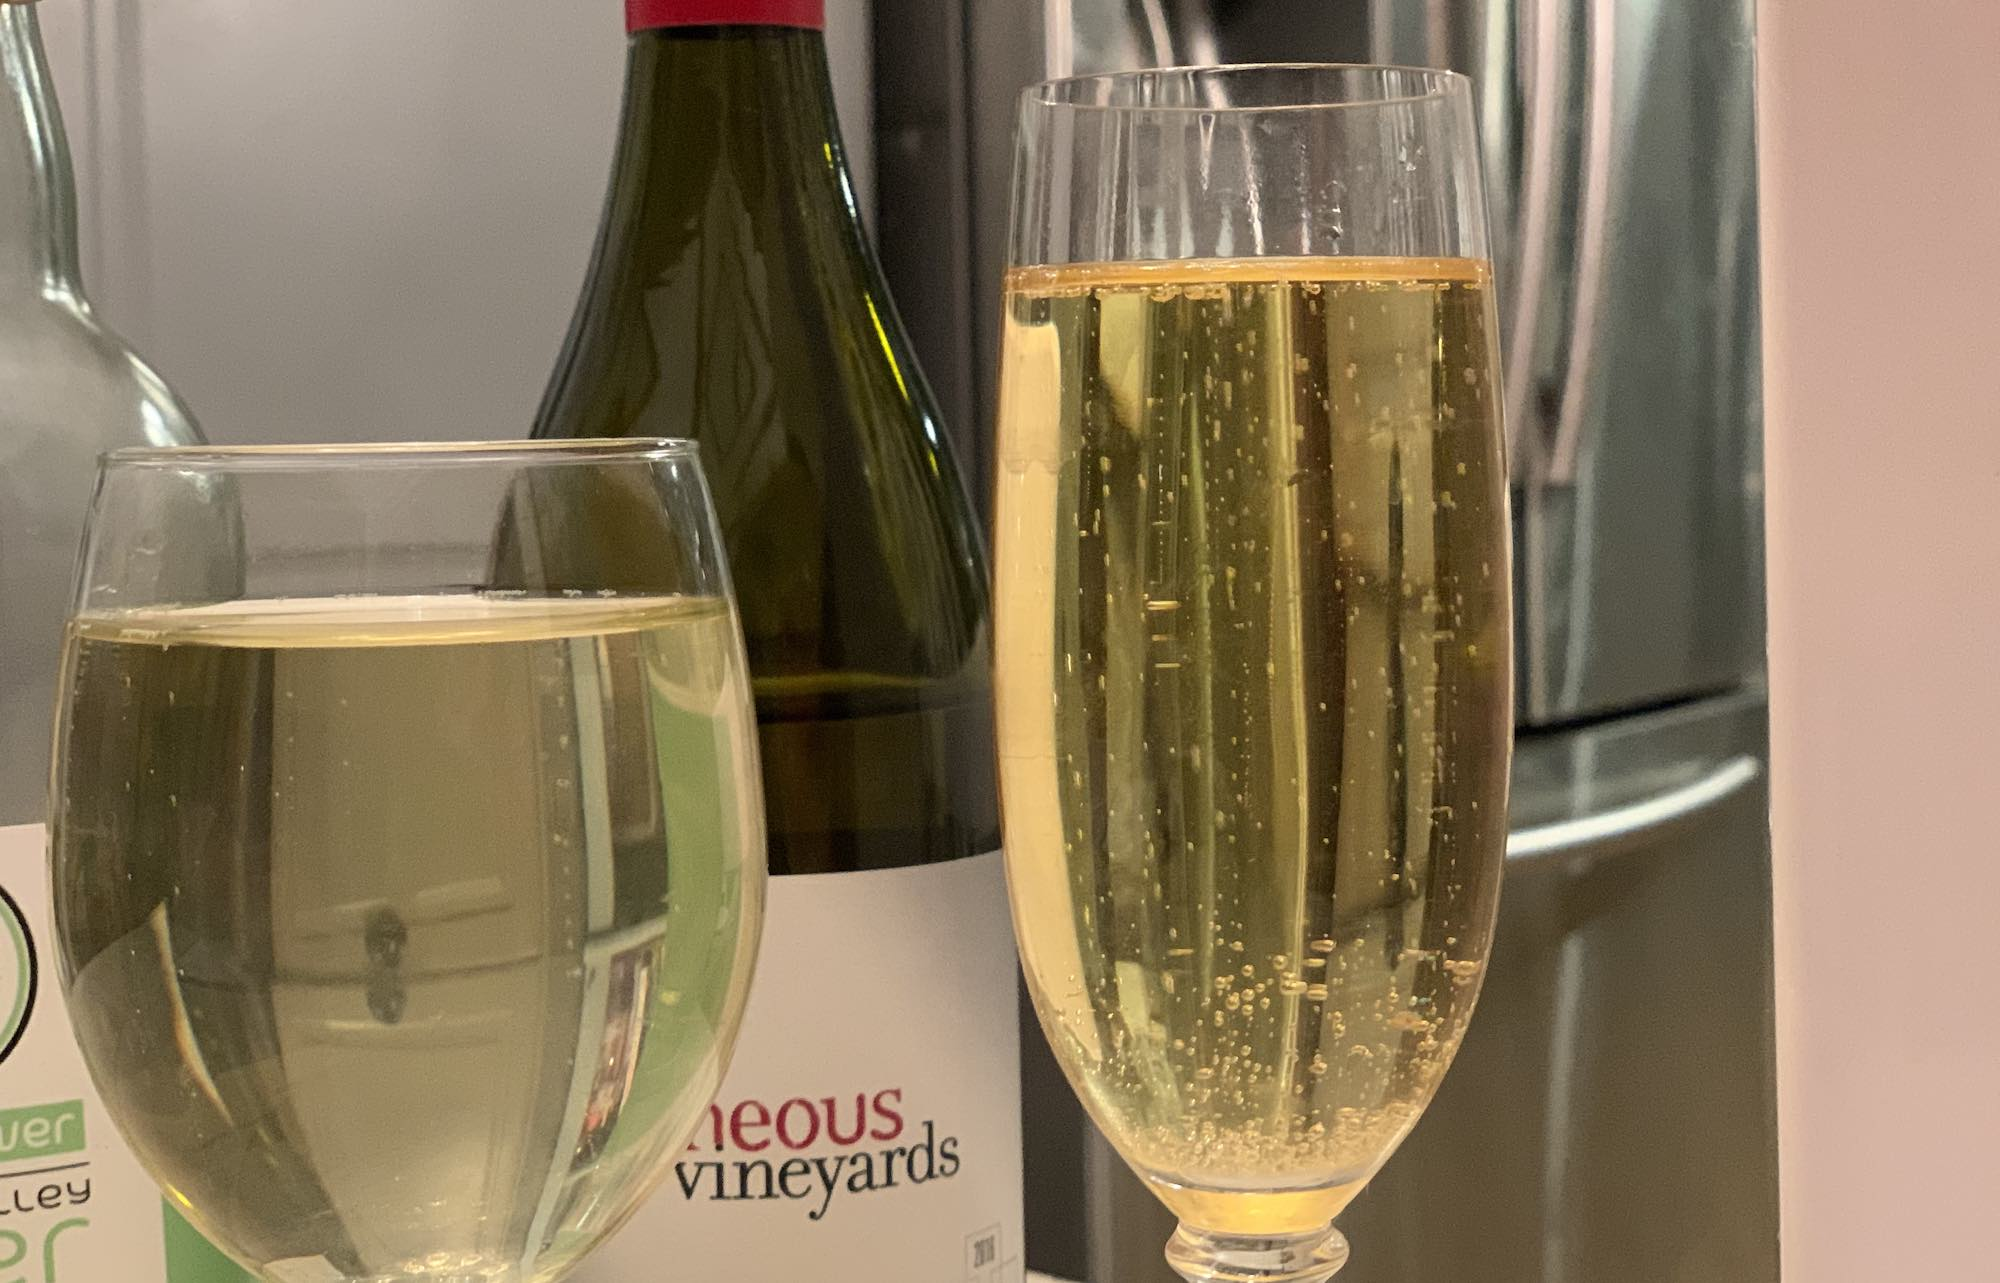 Drinkmate makes bubbly wine